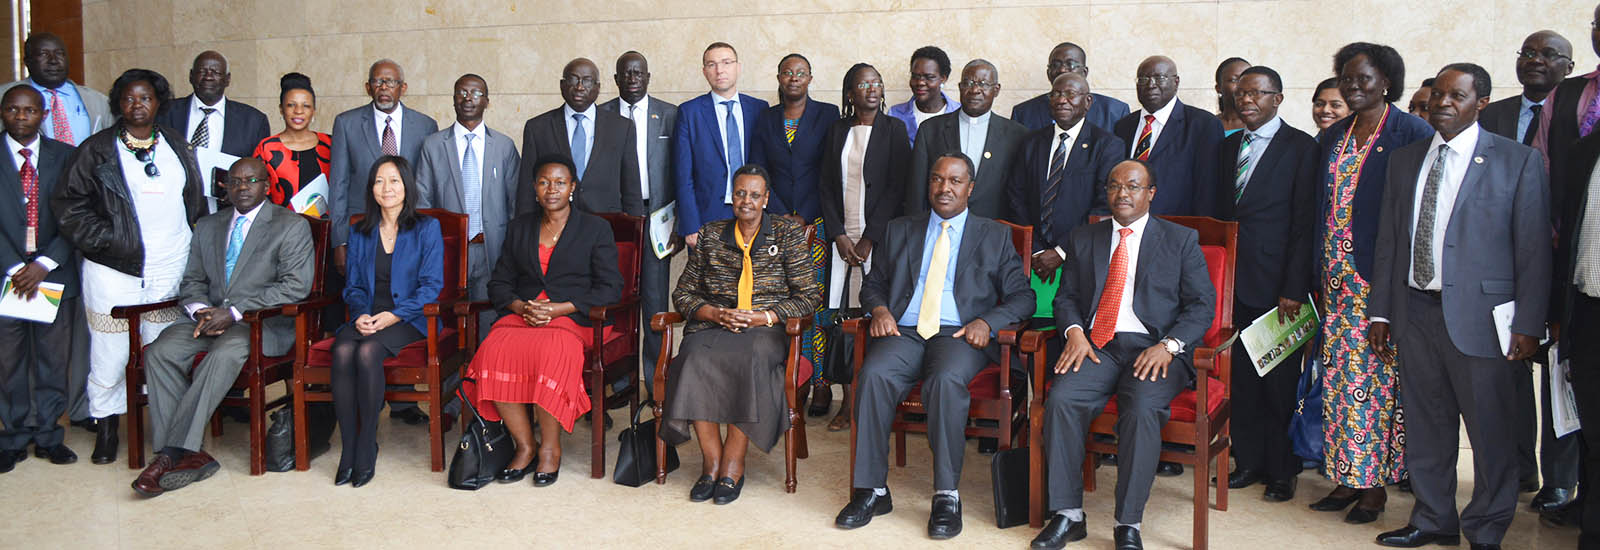 First Lady launches the Eastern and Southern African Centres of Excellence II Projects in Uganda